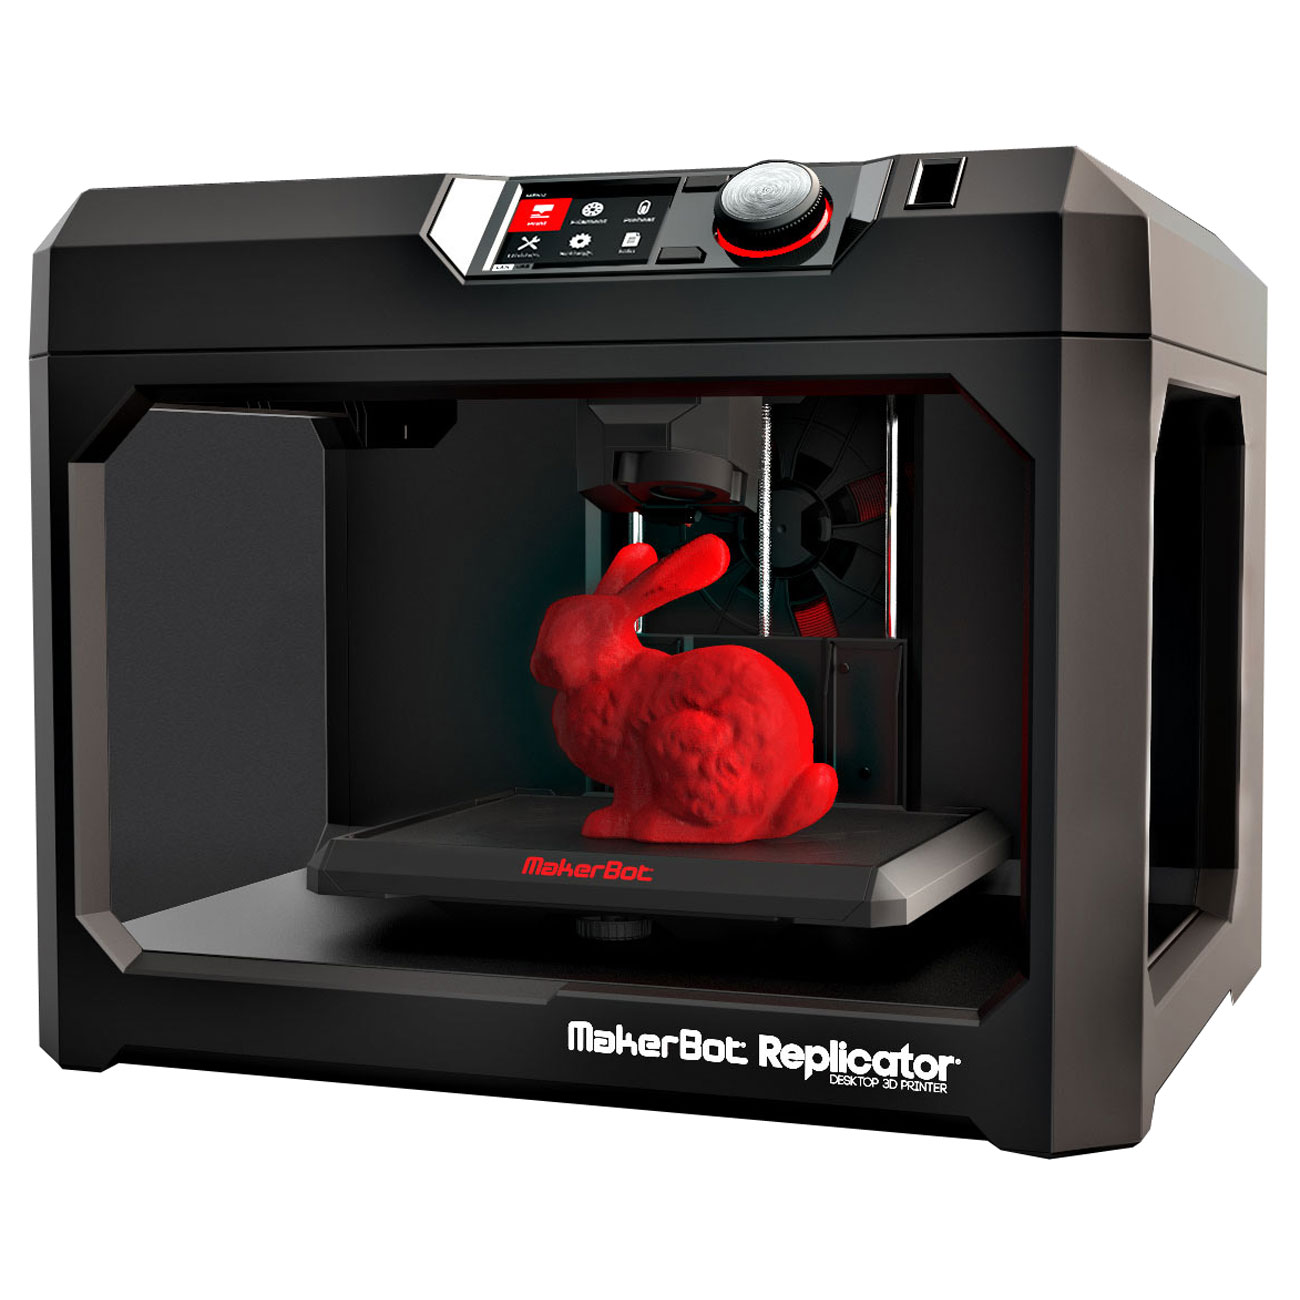 makerbot replicator 5th mp05825 mb5g achat vente imprimante 3d sur. Black Bedroom Furniture Sets. Home Design Ideas